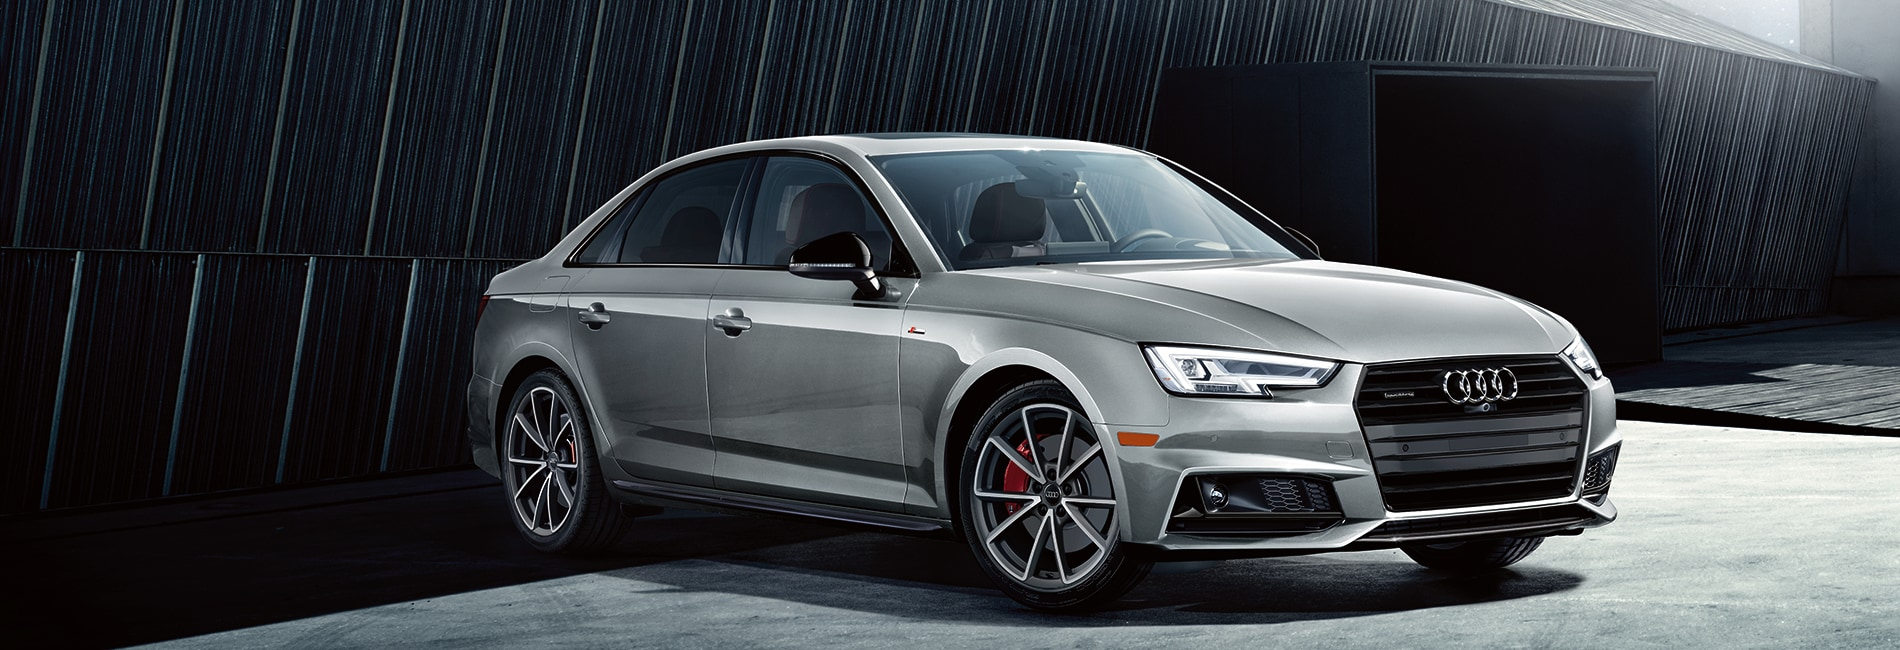 Audi A4 Exterior Vehicle Features